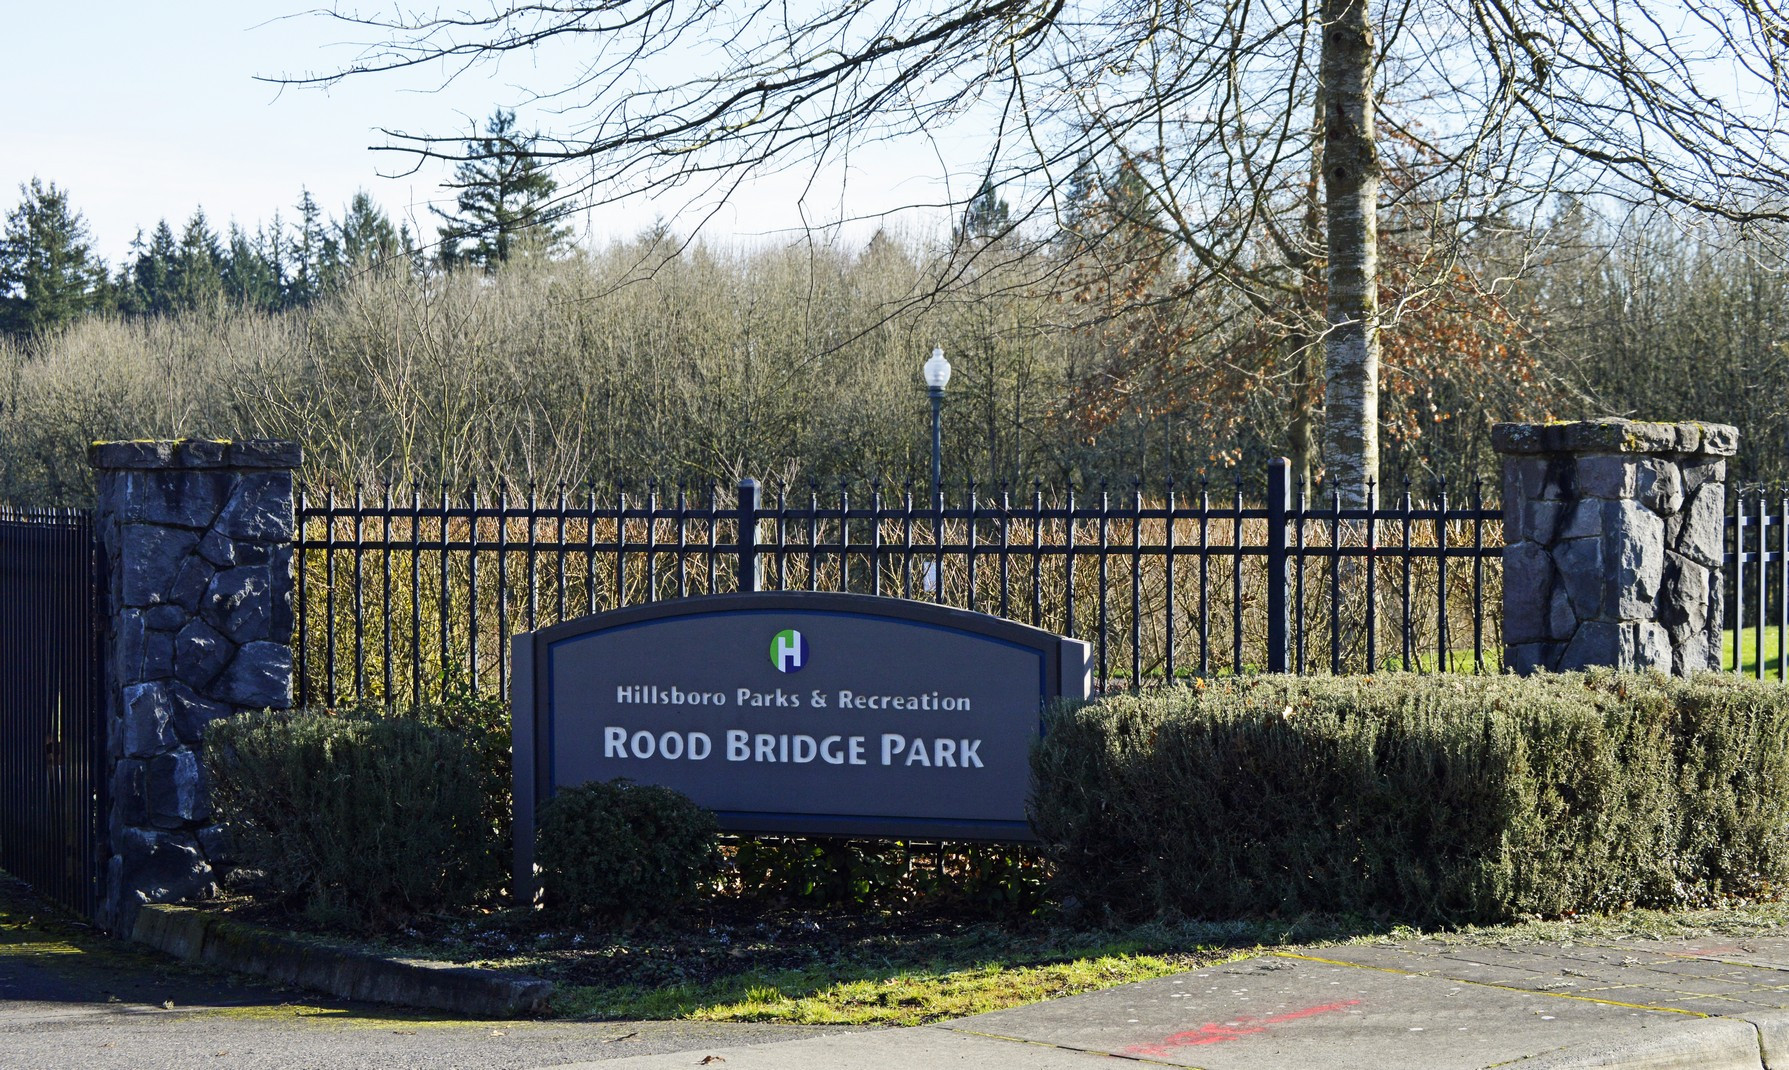 30-hillsboro-parks-and-recreation-rood-bridge-park-the-kelly-group-real-estate